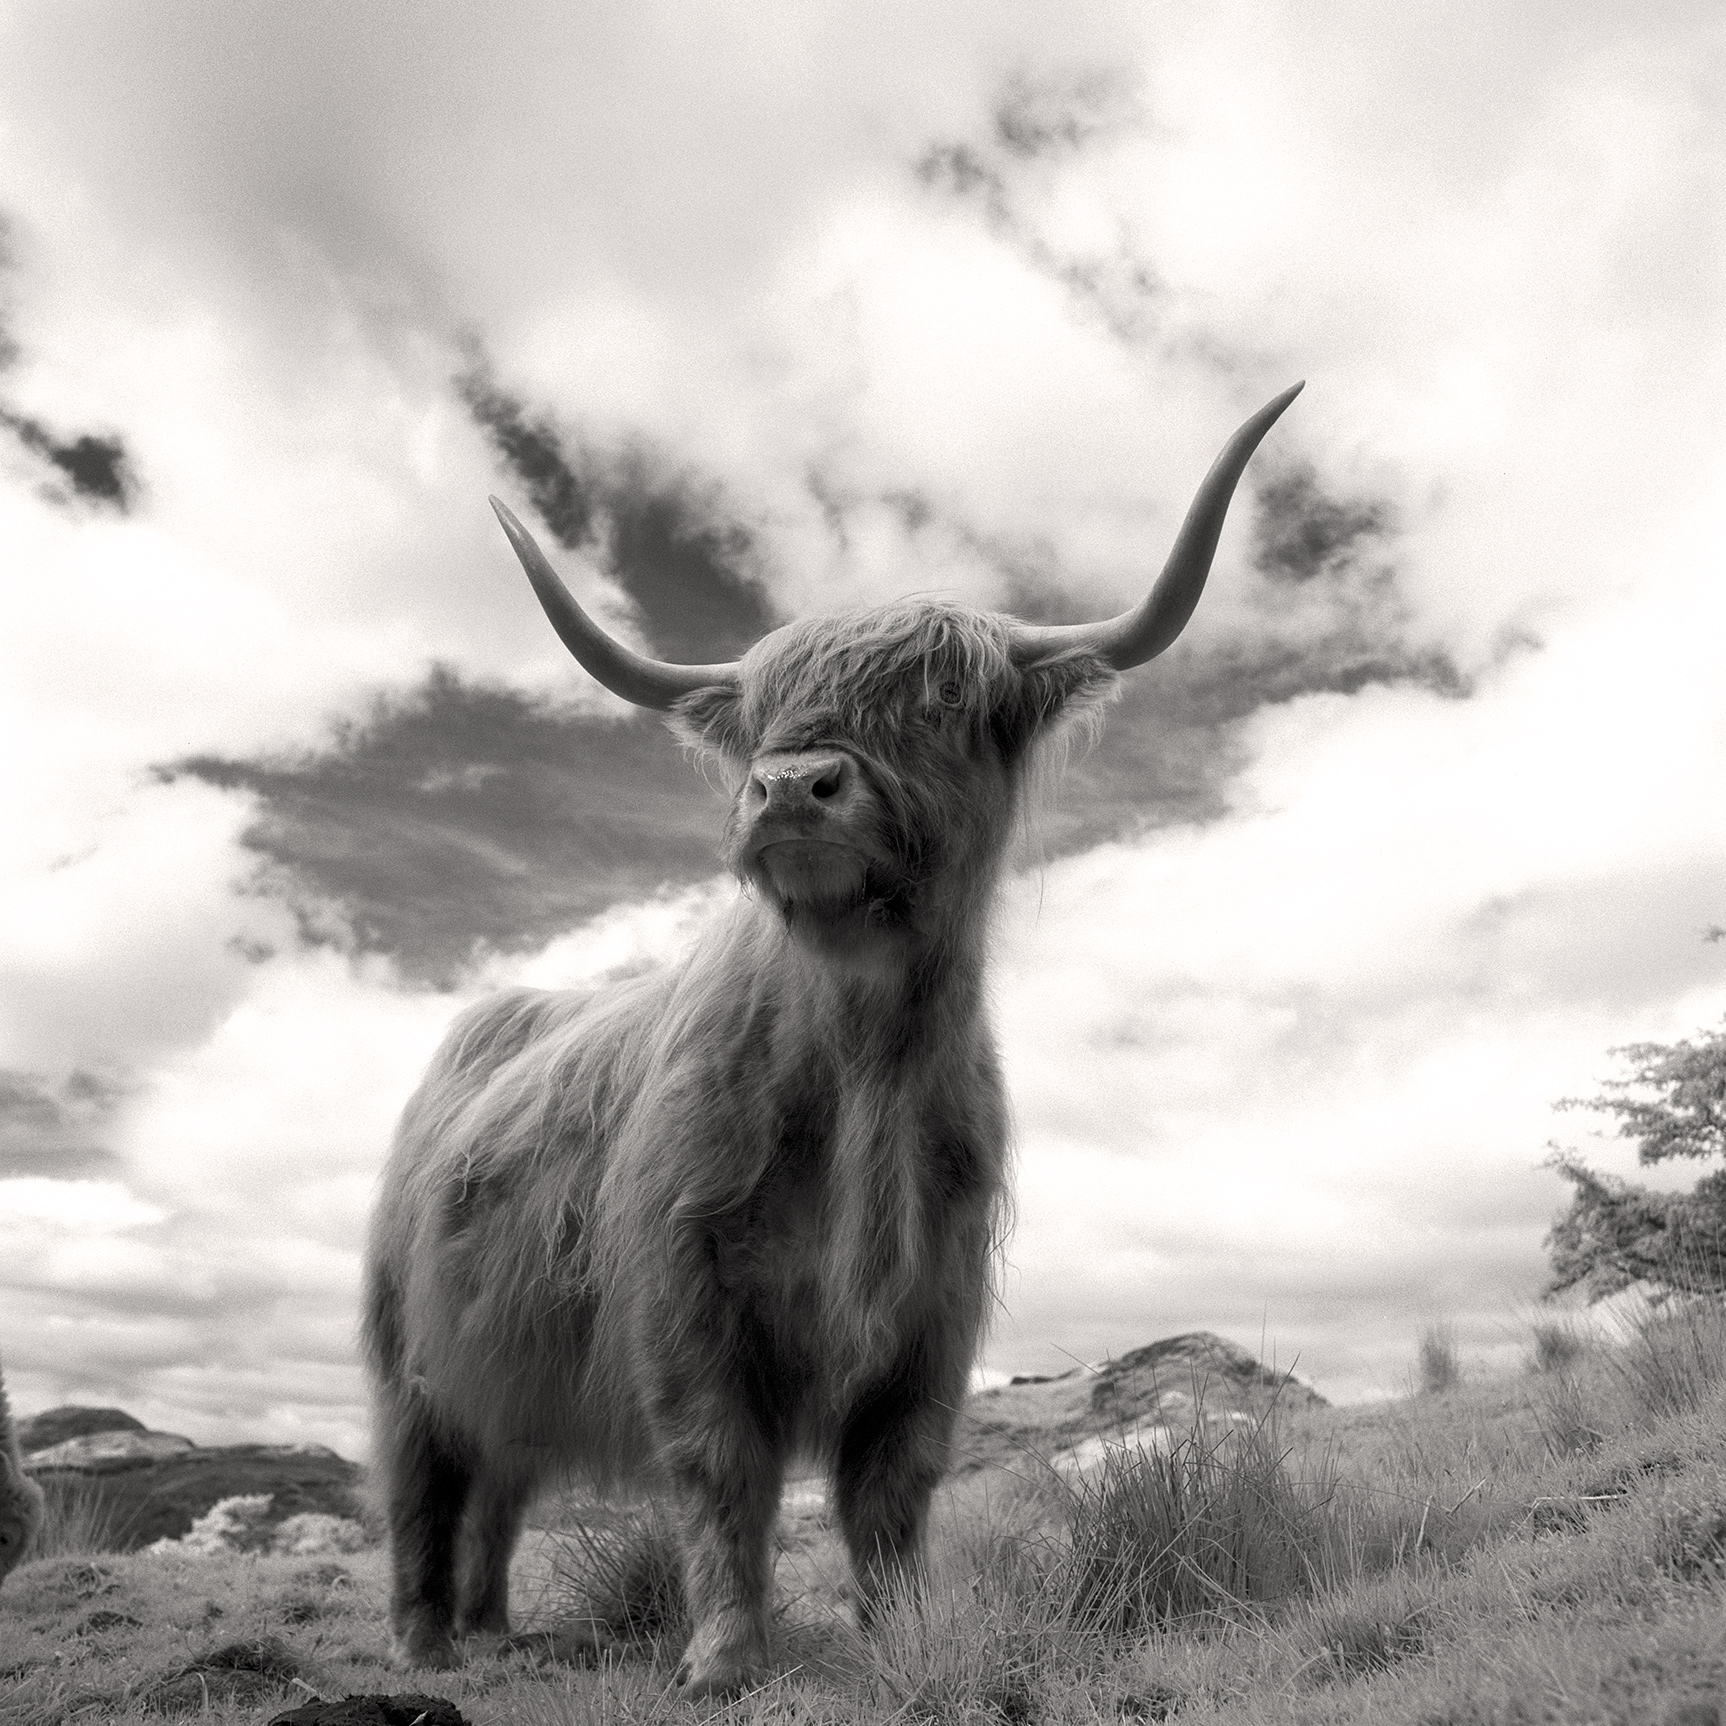 Highland Cow, Scotland (060716)